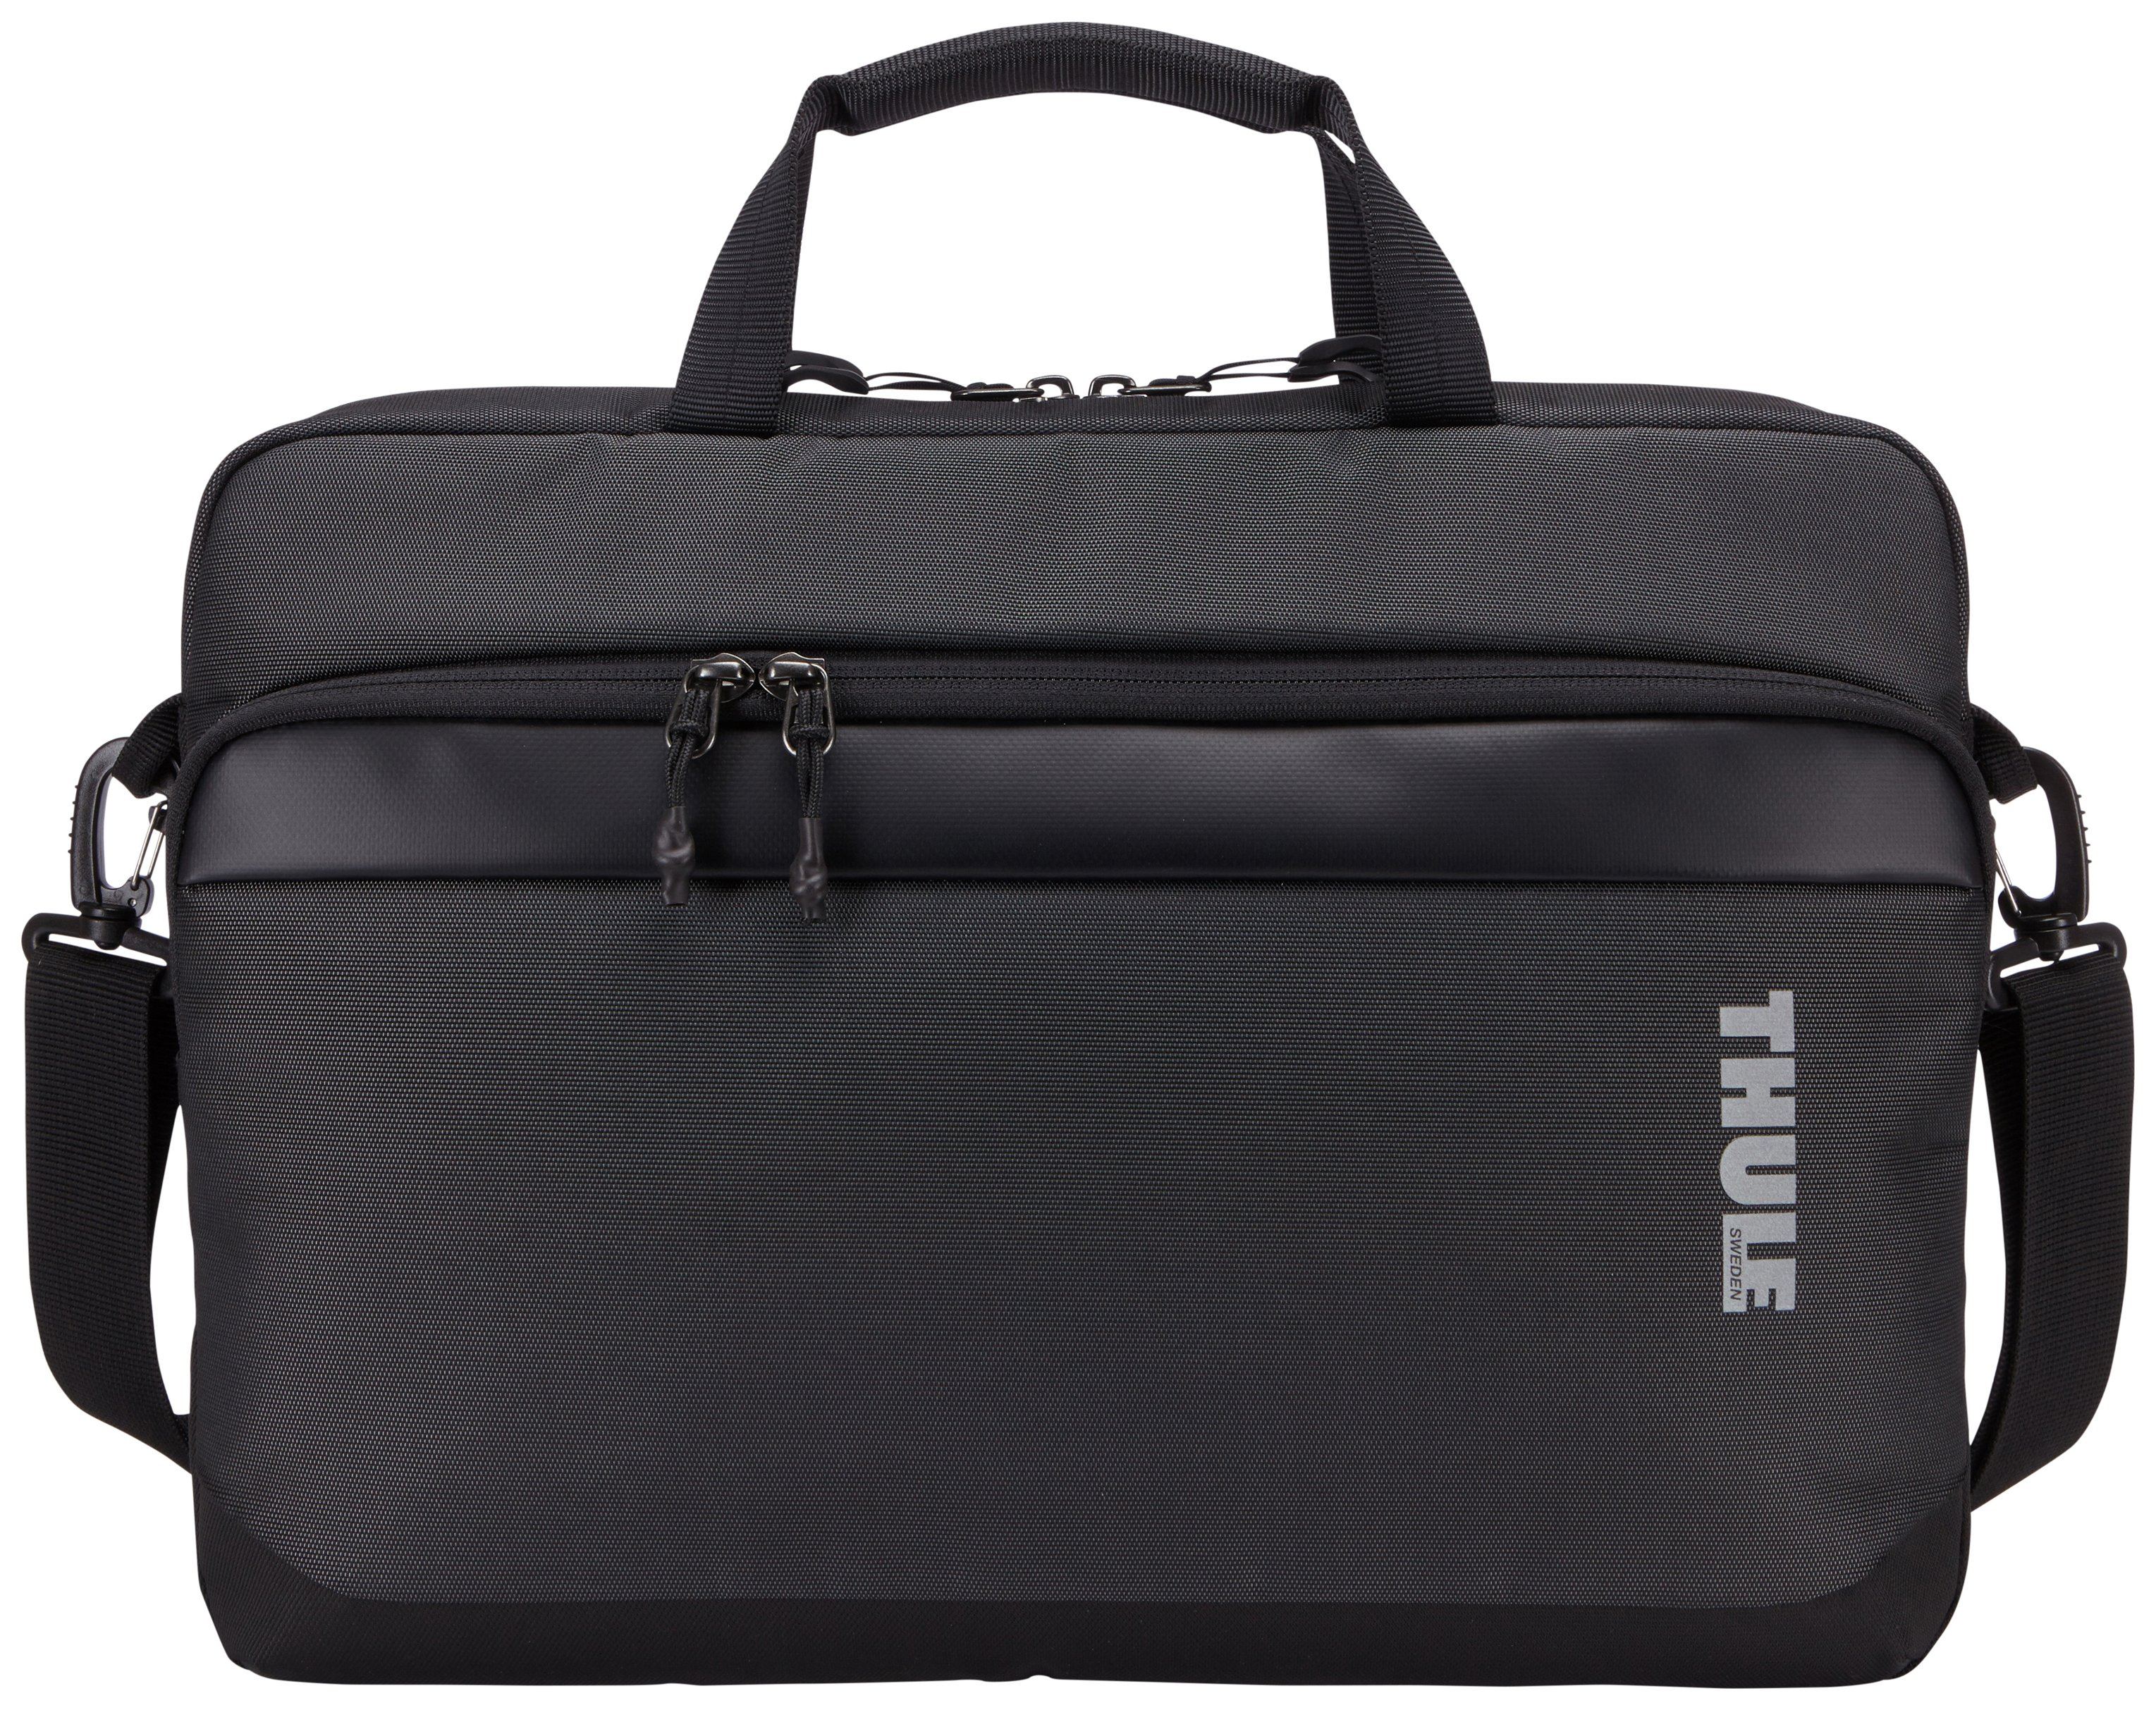 Thule Subterra Attache for 15 inch Laptops - Black.